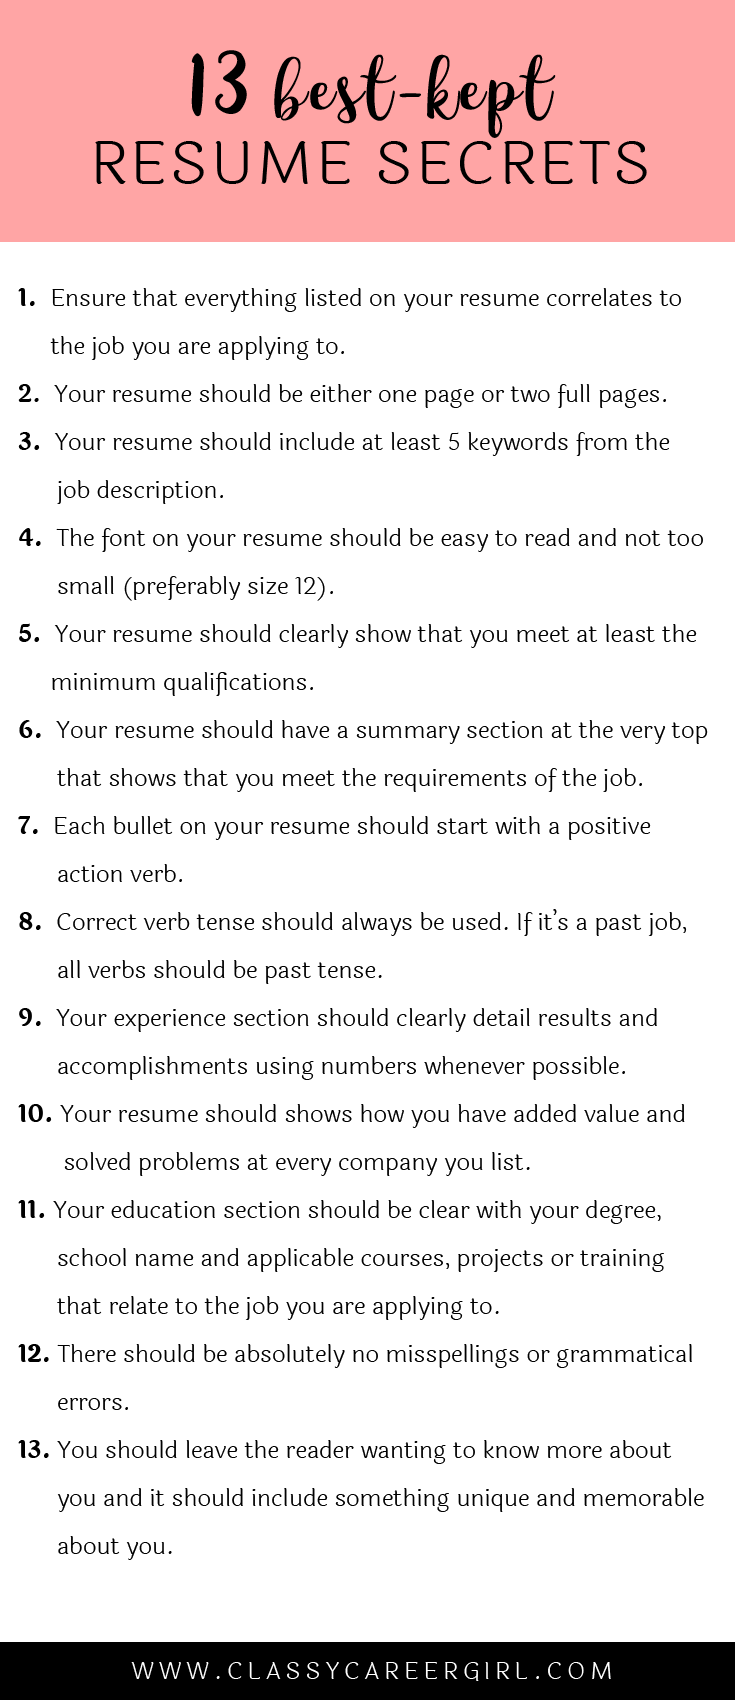 The 13 Best-Kept Resume Secrets | Currículum, Consejos y Escuela de ...